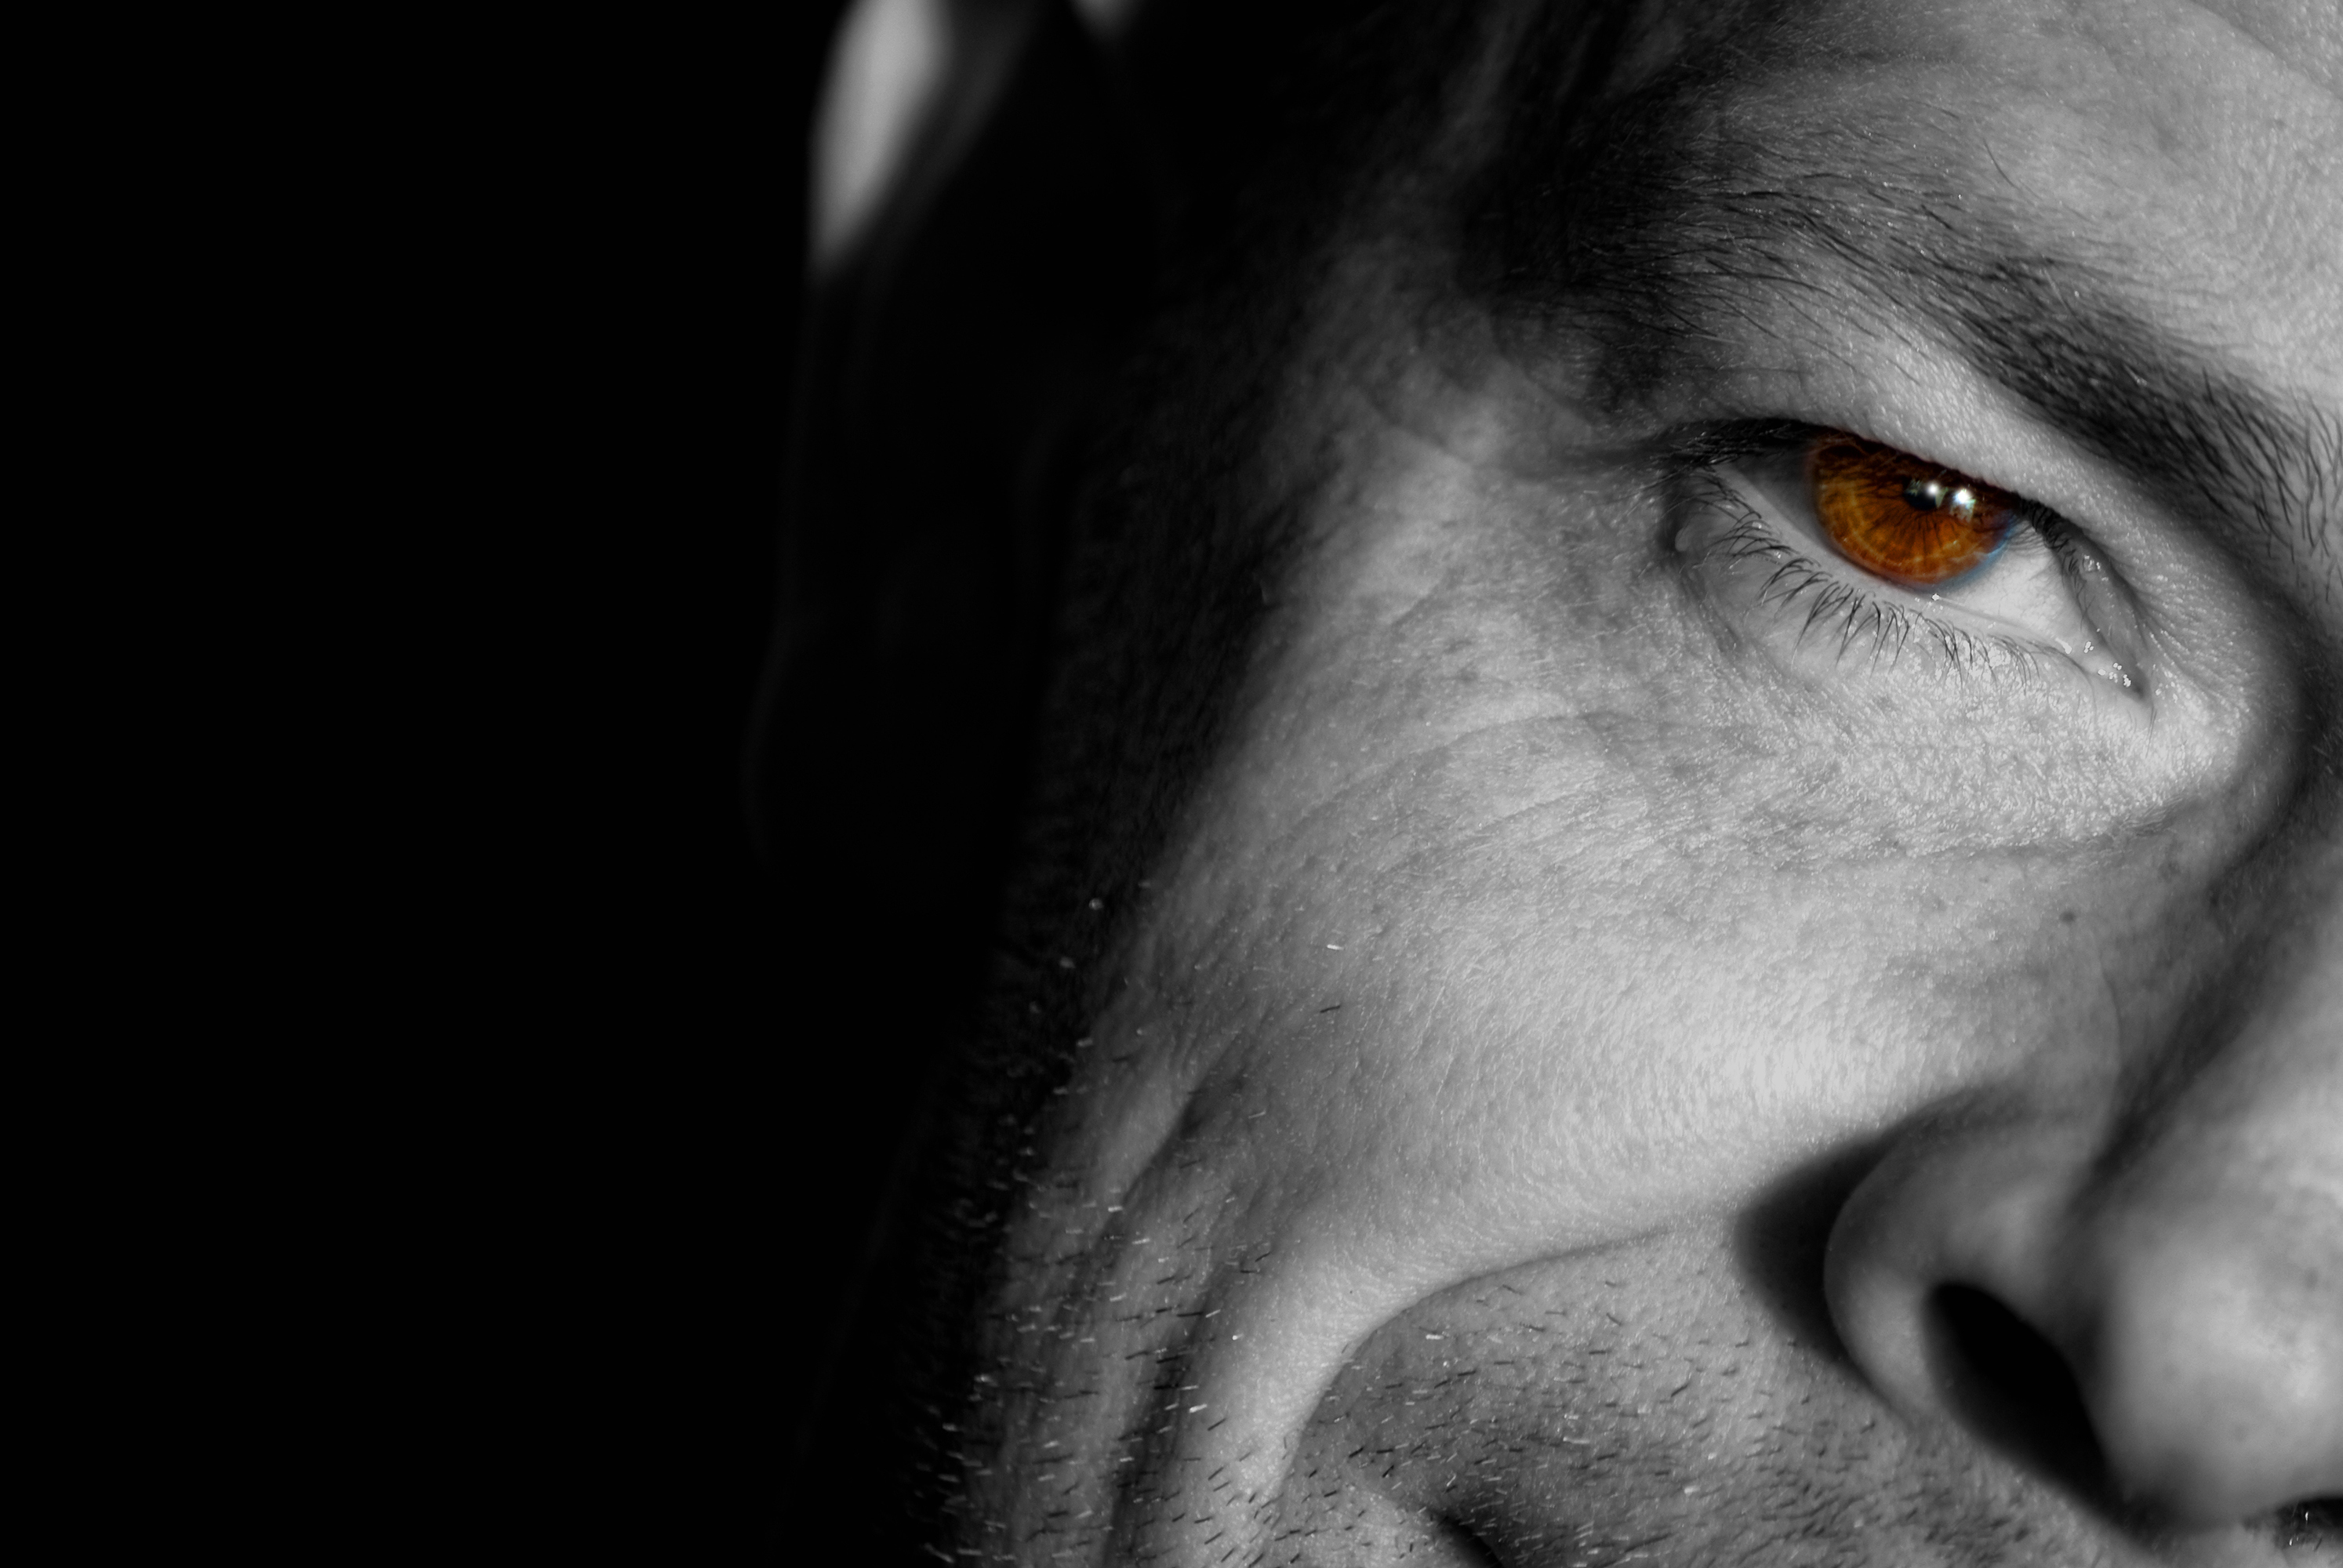 A semi-monochromatic image of a handsome middle aged man staring at you from the shadows.